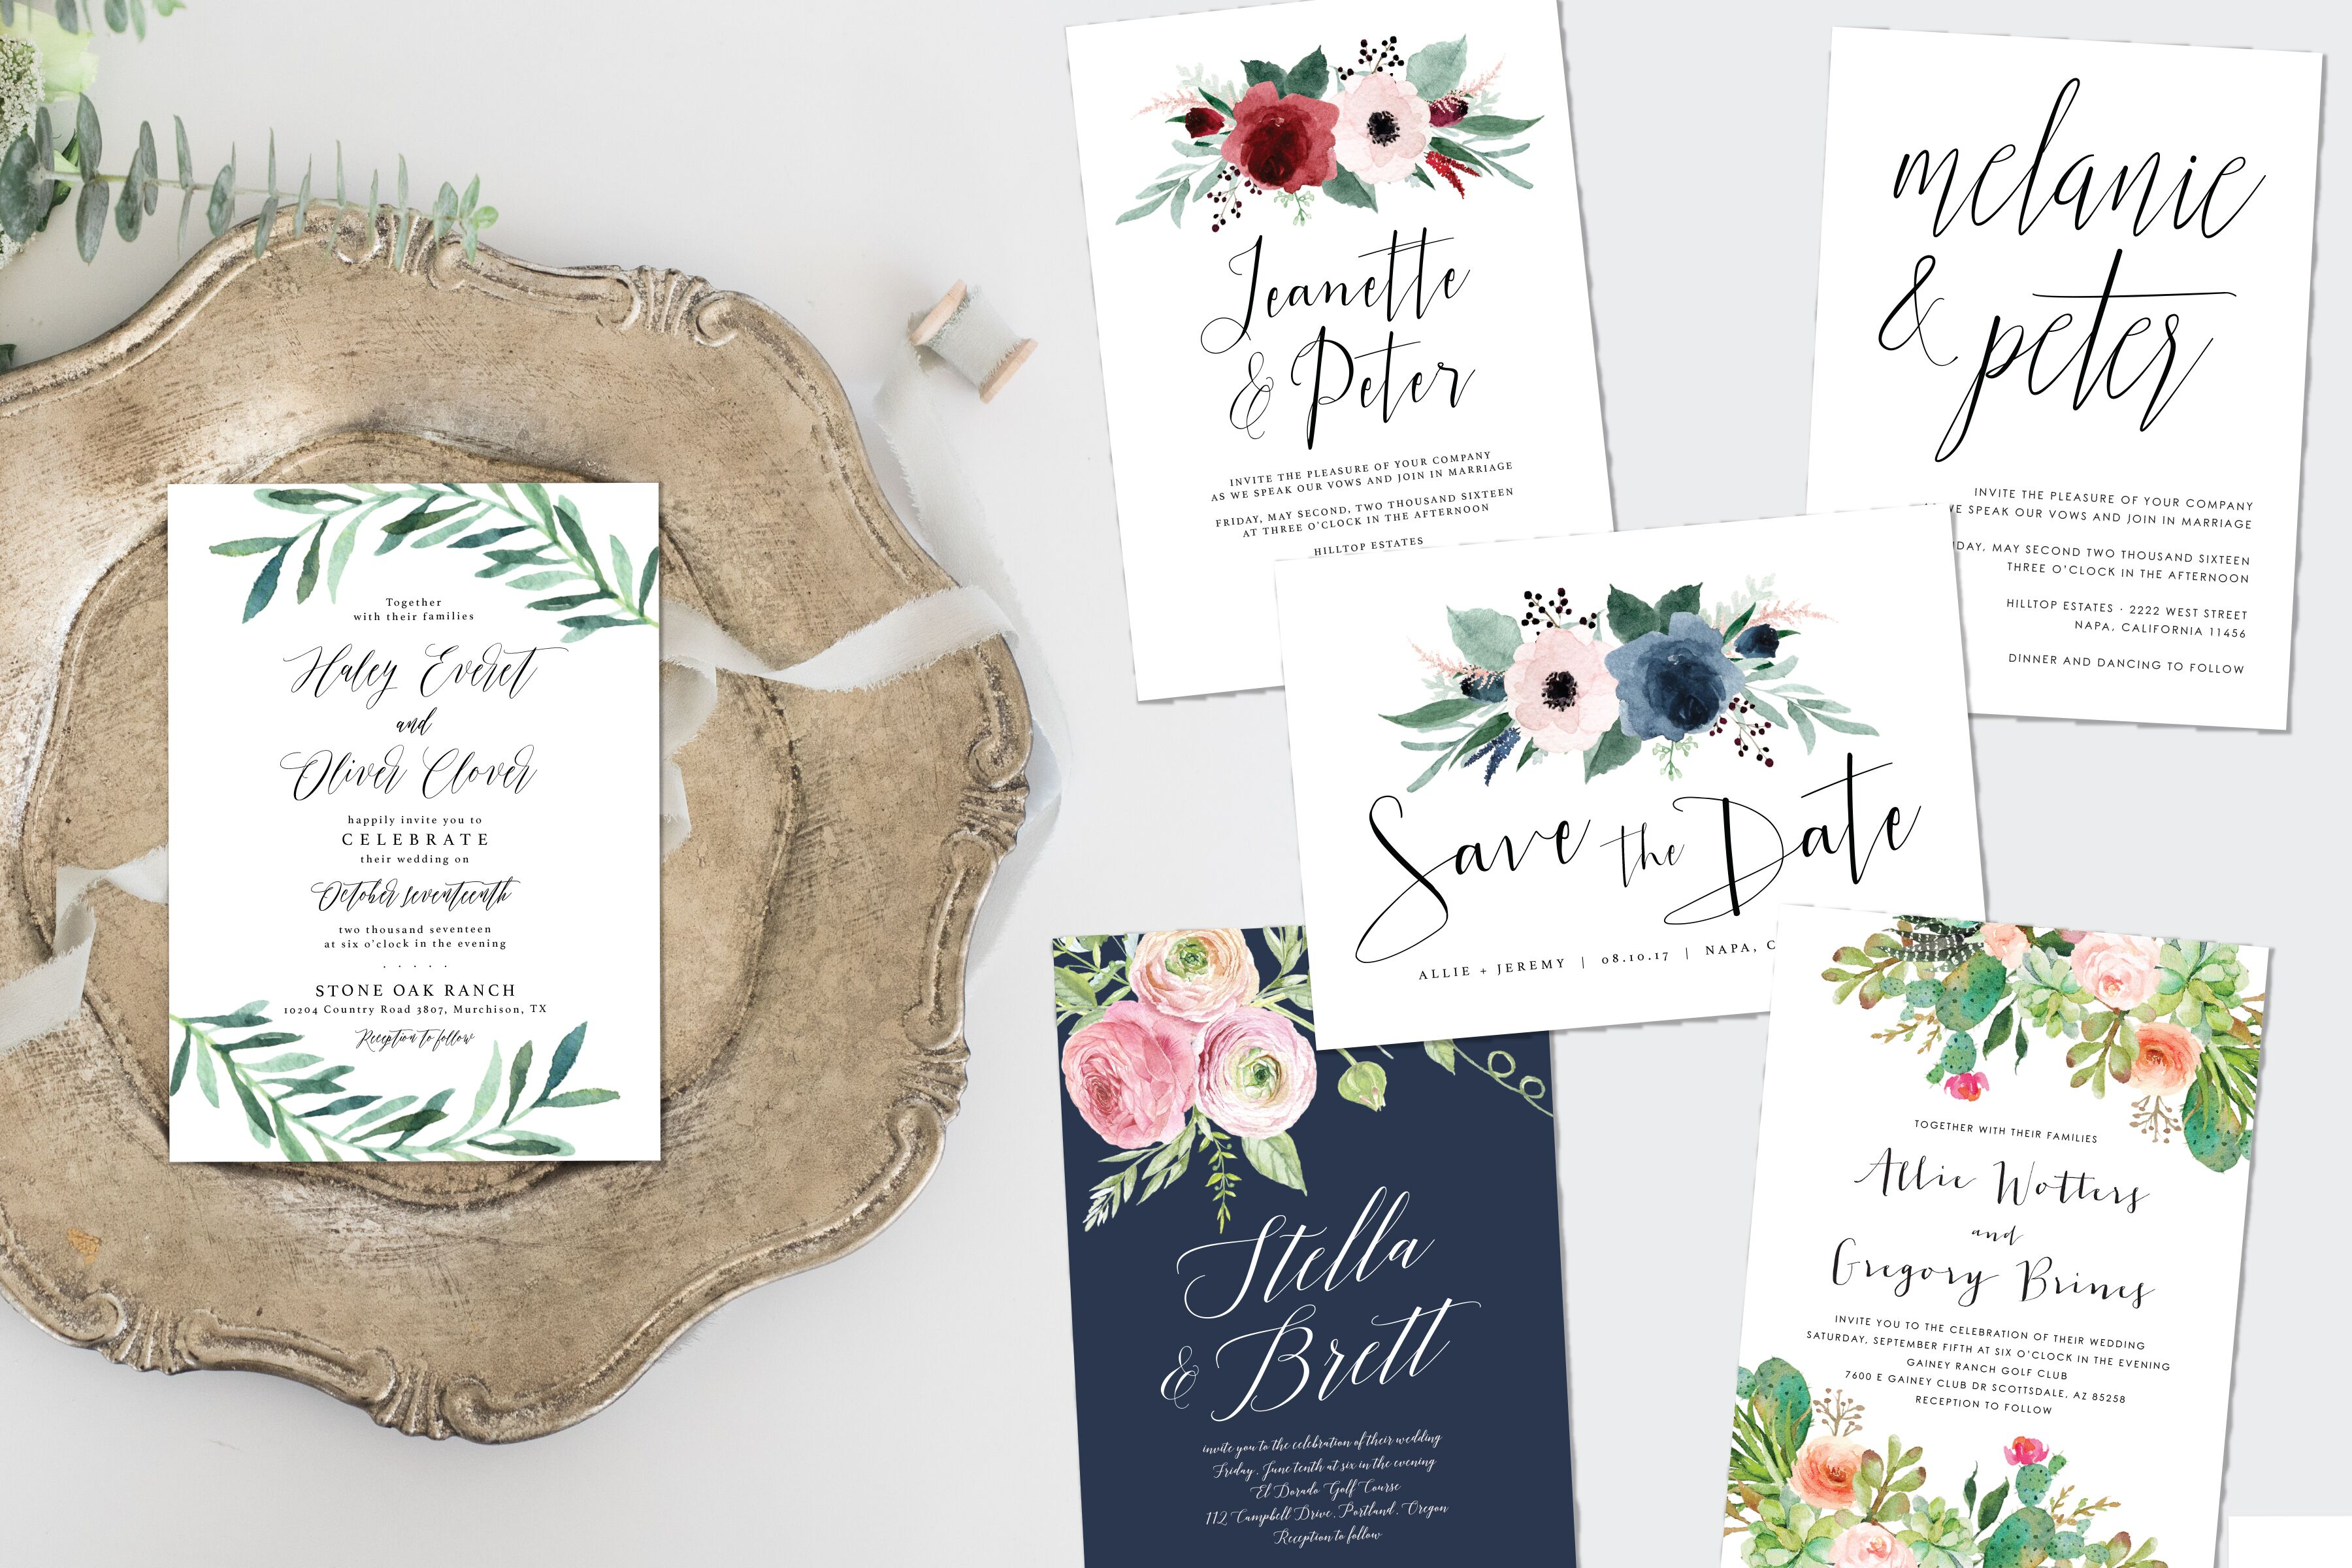 Invitations + Paper in Los Angeles, CA - The Knot